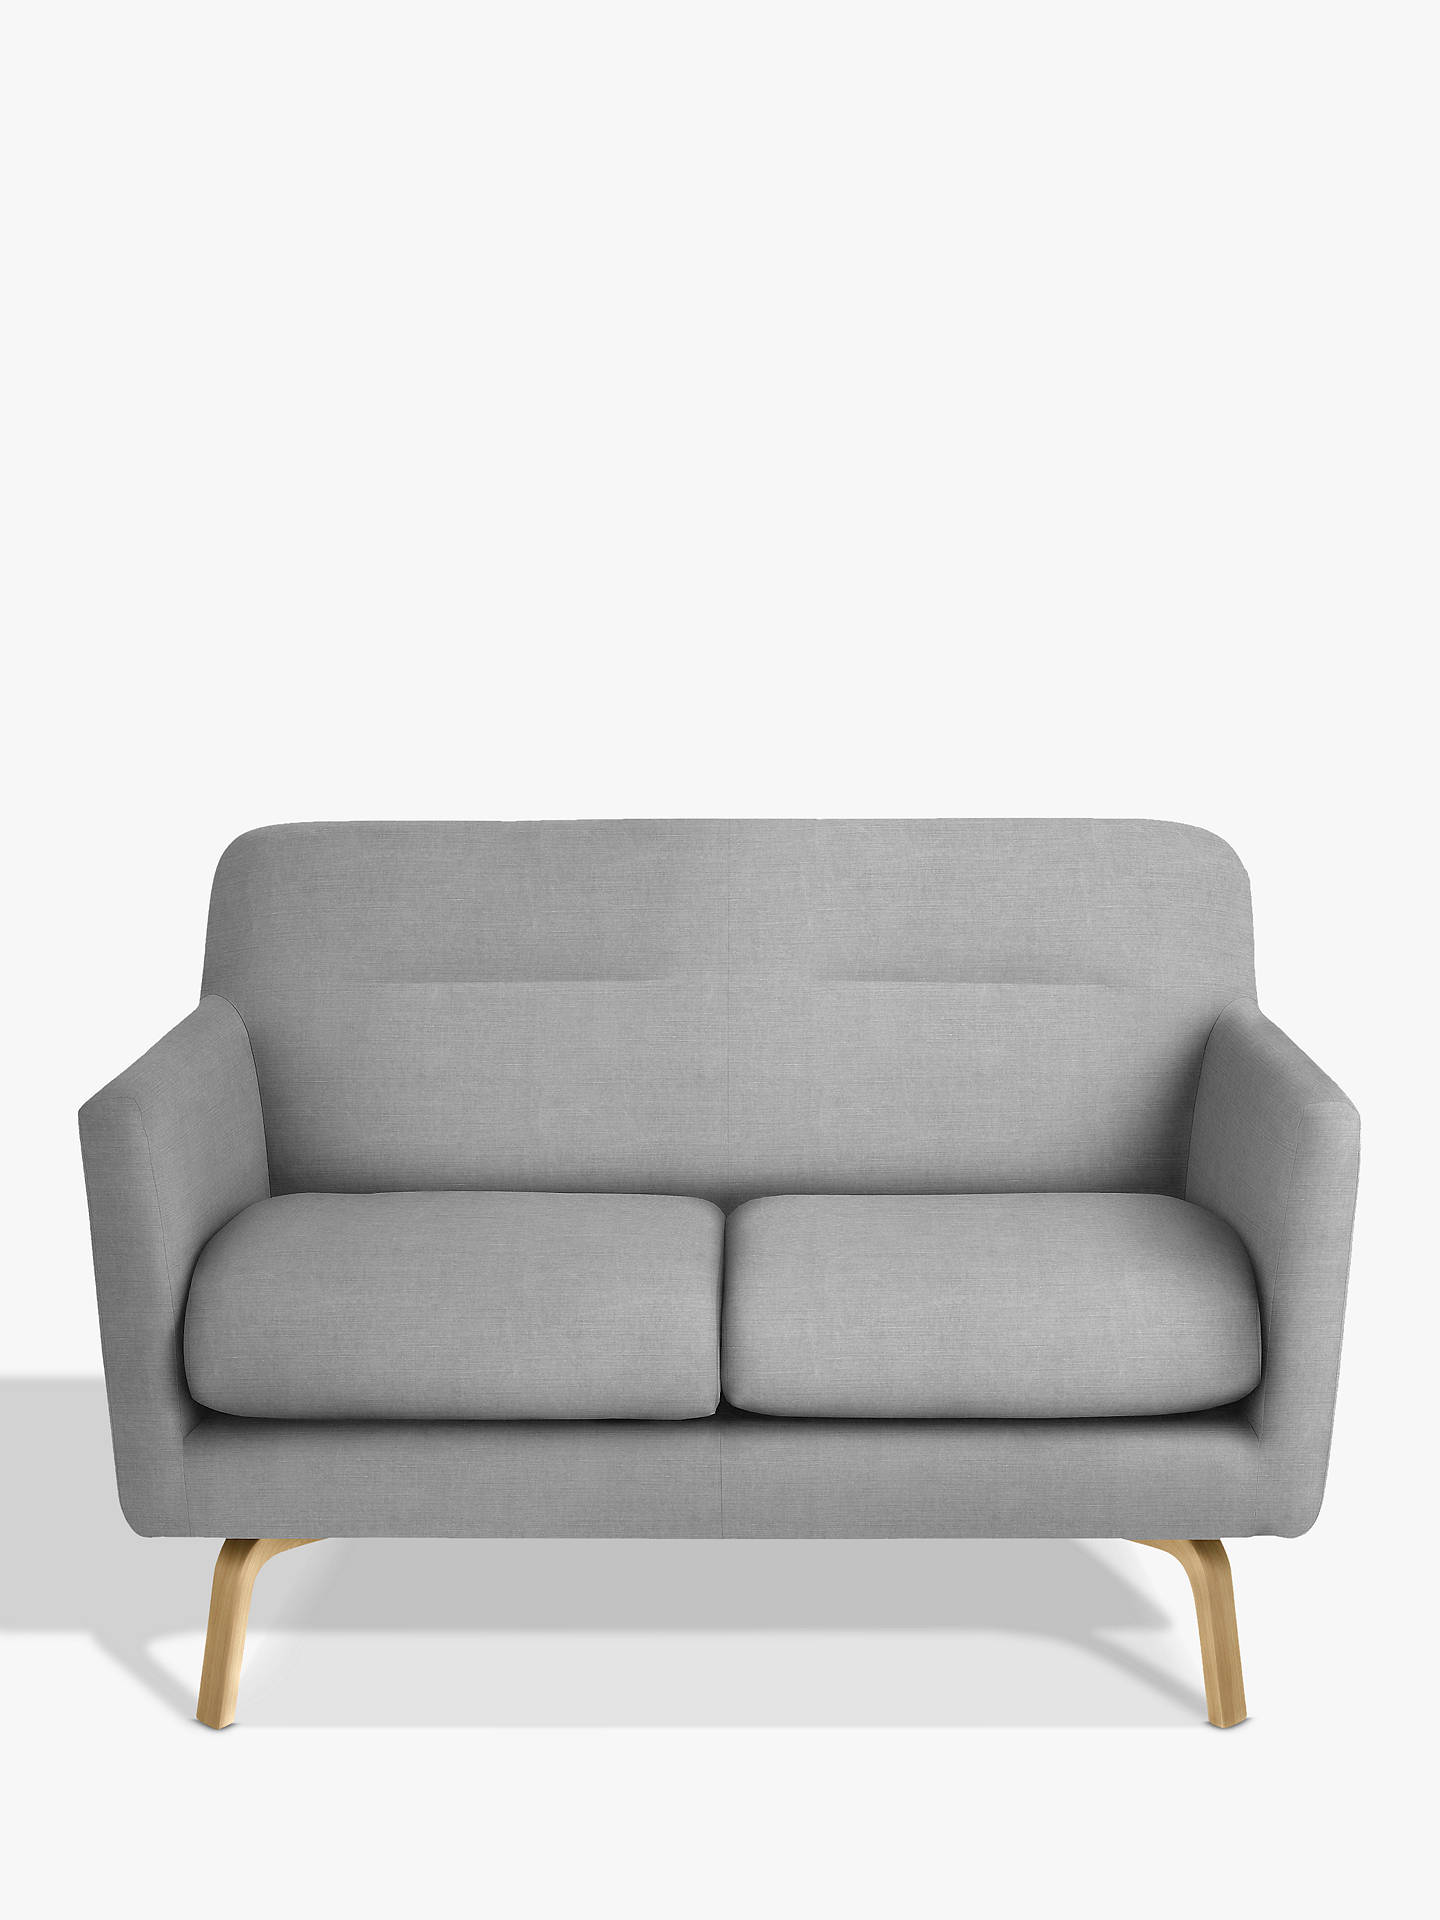 Archie Small 2 Seater Sofa Light Leg